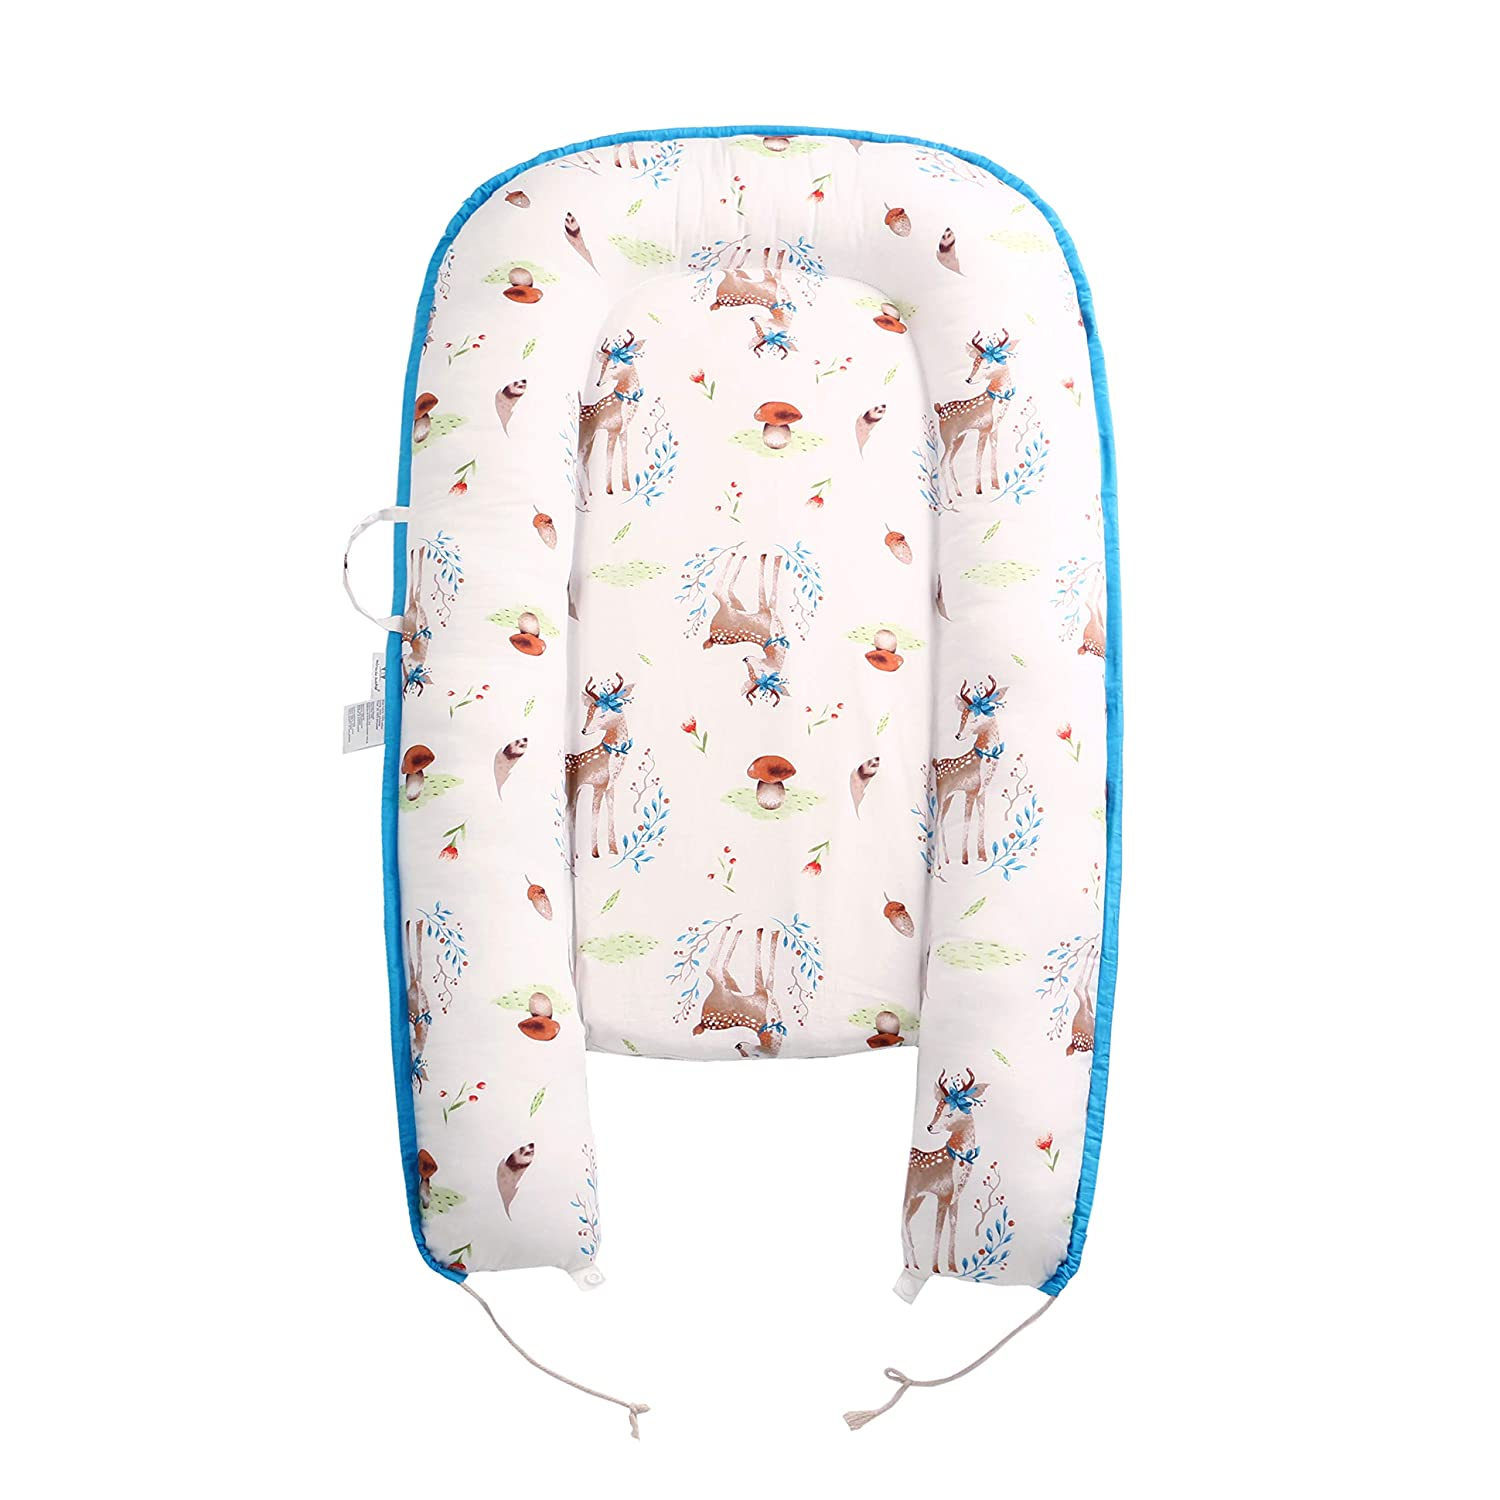 Baby Lounger Portable 100/% Organic Soft Cotton Breathable Crib Bear Perfect for Co-Sleeping and Traveling 0-12 Months Baby Nest and Baby Bassinet